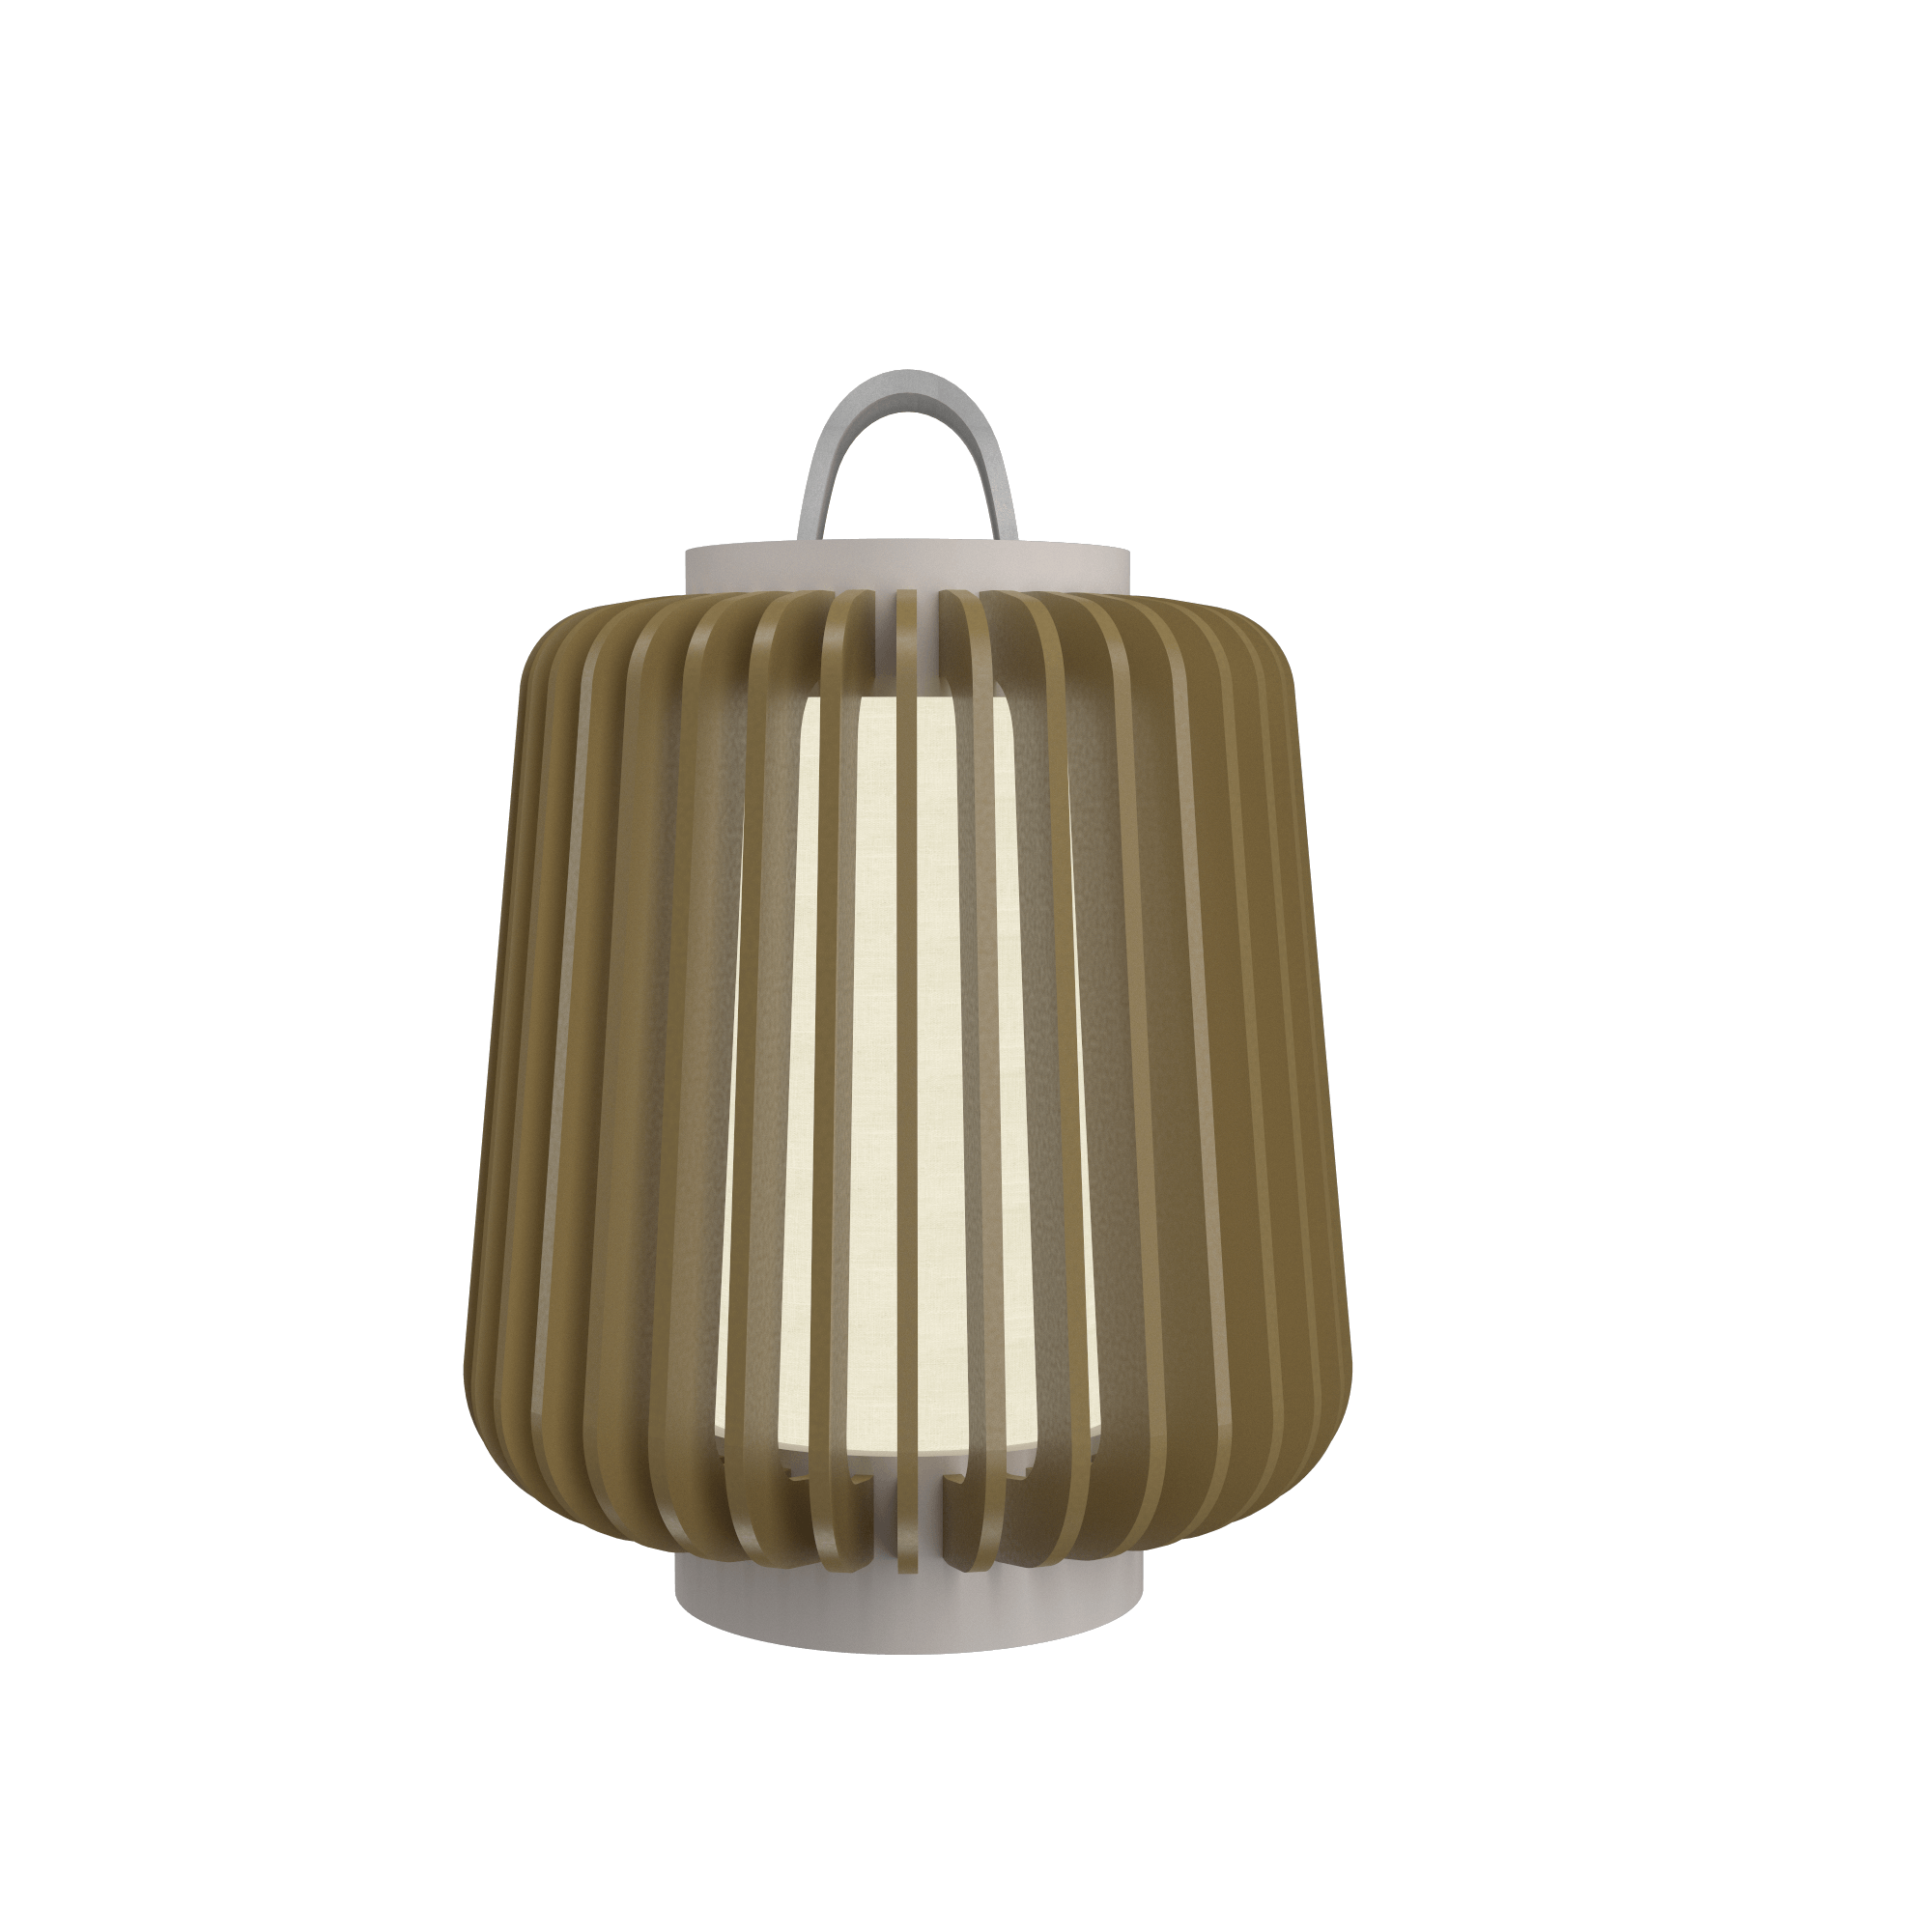 Table Lamp Accord Stecche Di Legno 7059 - Stecche Di Legno Line Accord Lighting | Pale Gold